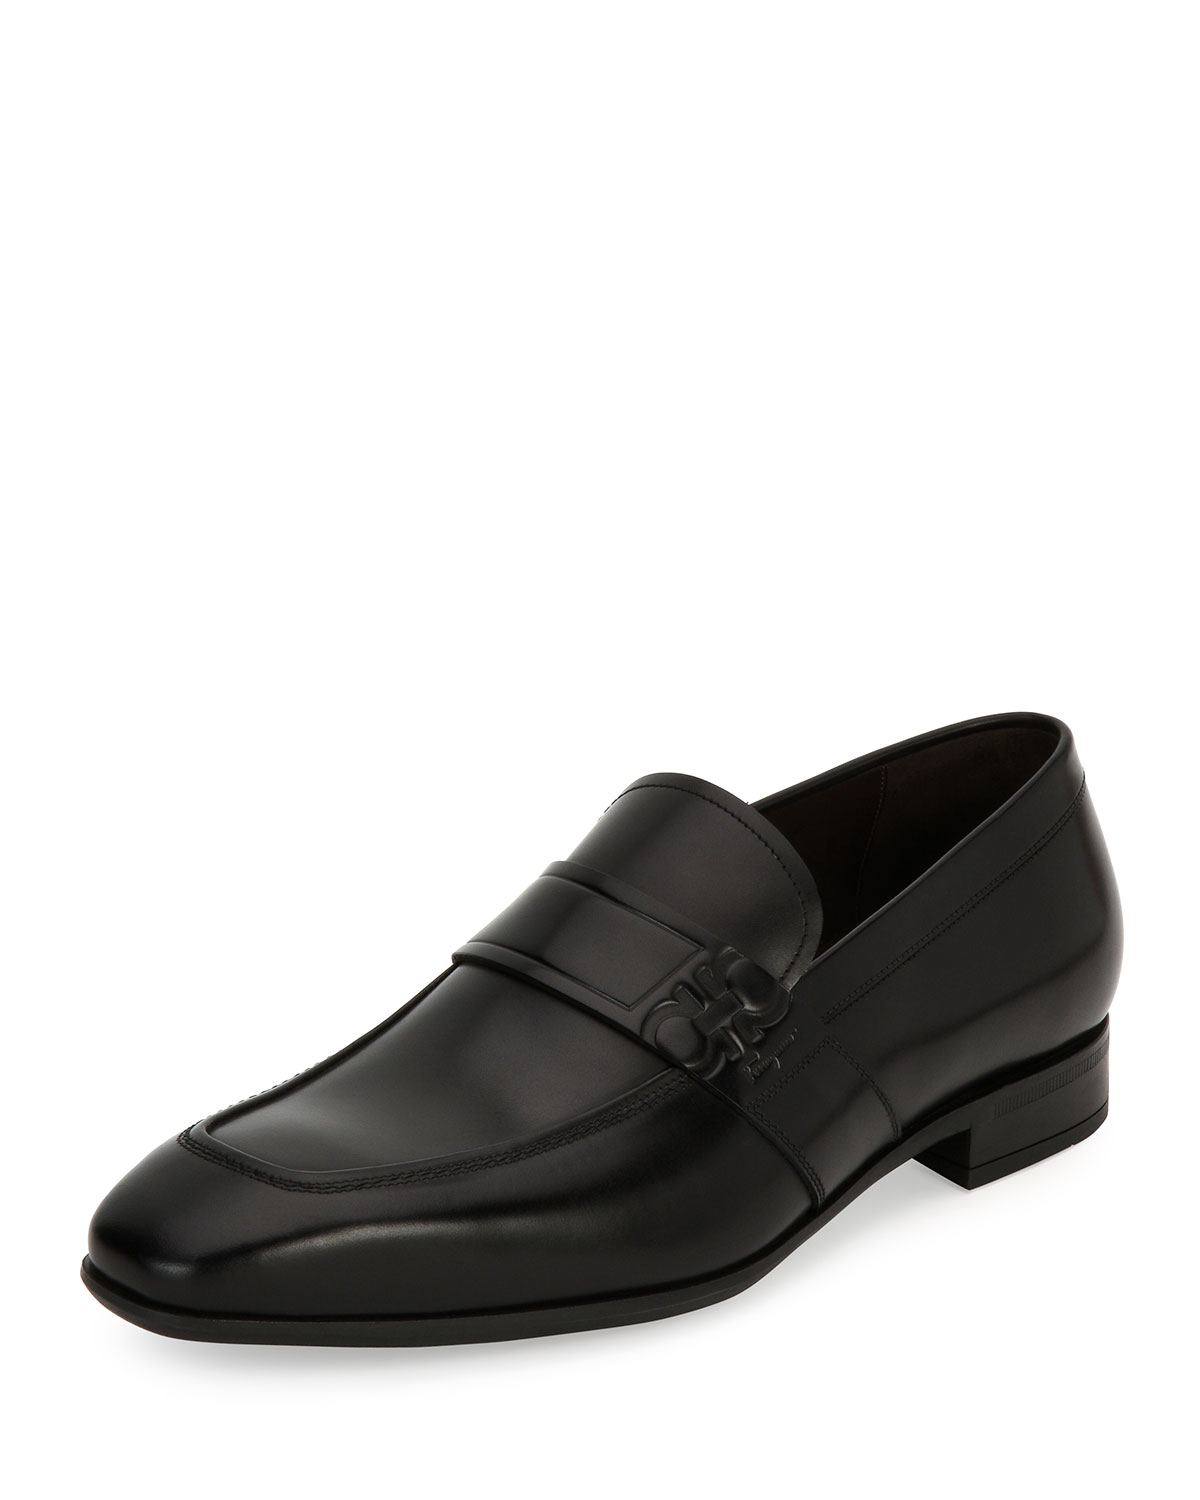 146ea7dbbbe Salvatore FerragamoMen s Gancini-Embossed Leather Loafer